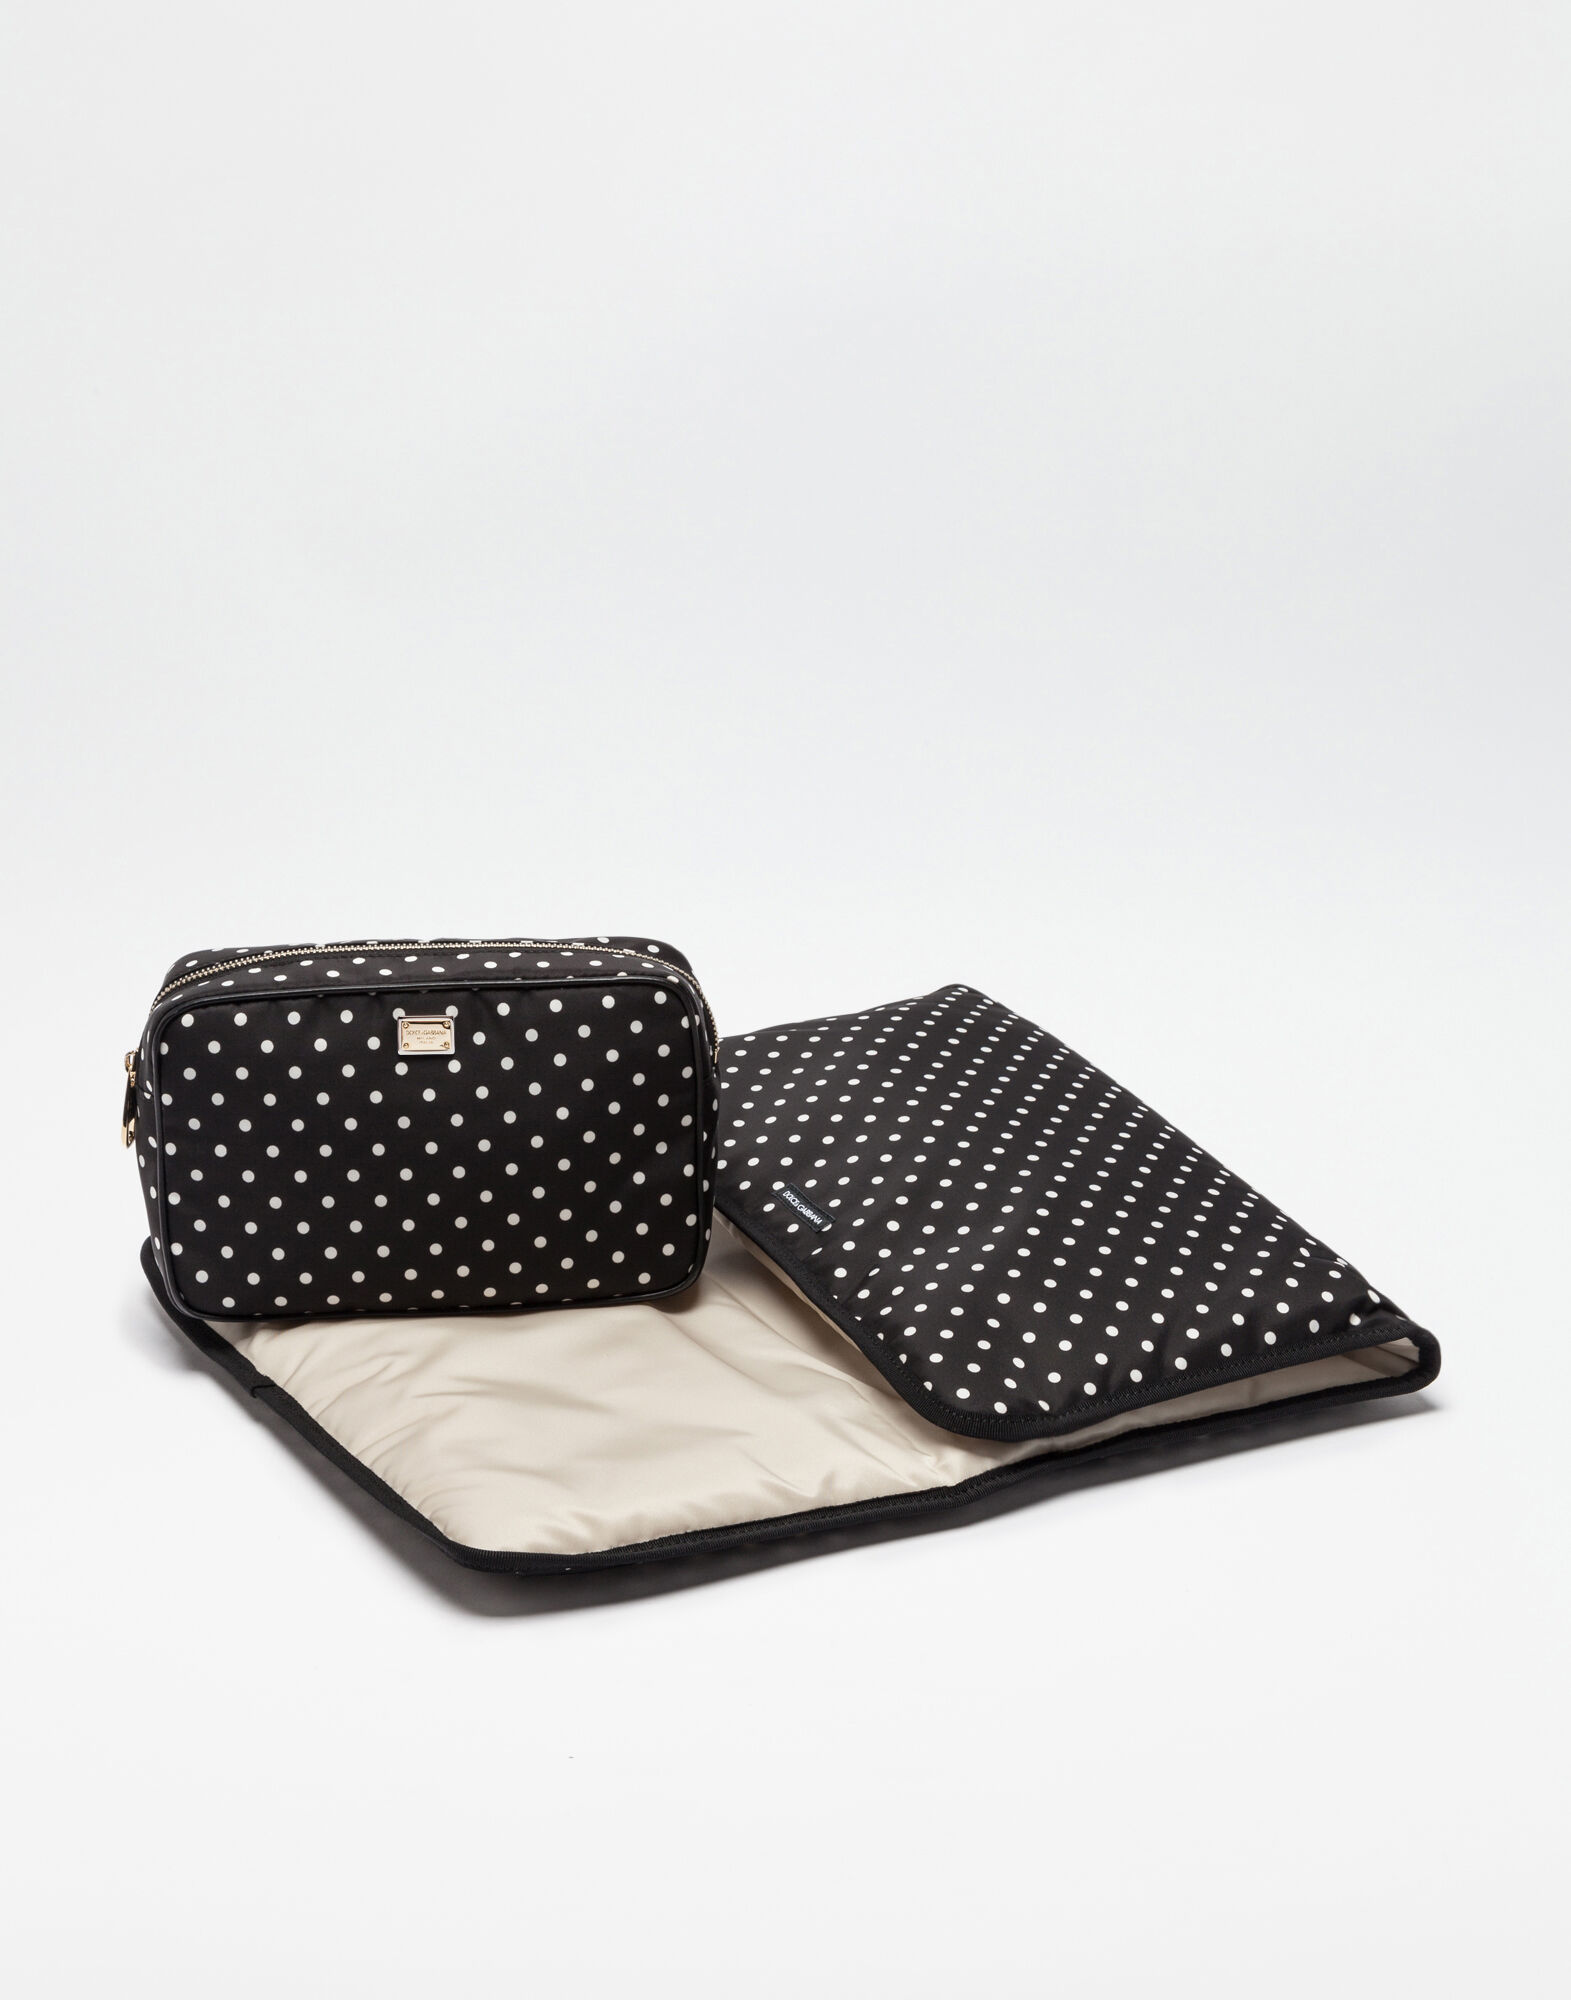 NYLON NAPPY BAG WITH POLKA DOT PRINT